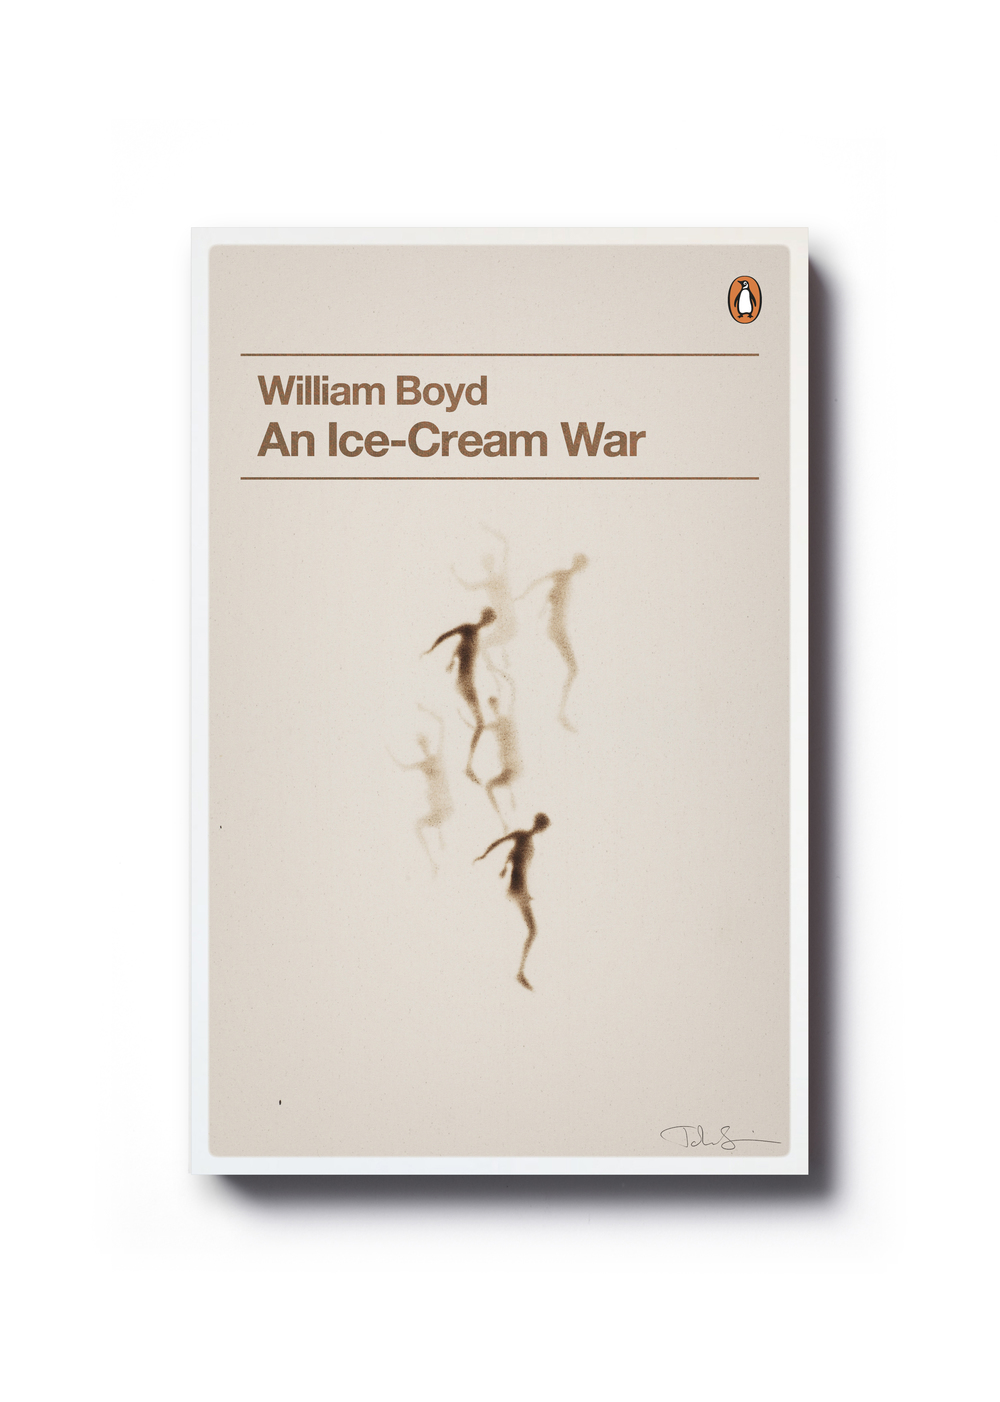 An Ice-Cream War by William Boyd (Penguin Decades series) - Art: John Squire Design: Jim Stoddart